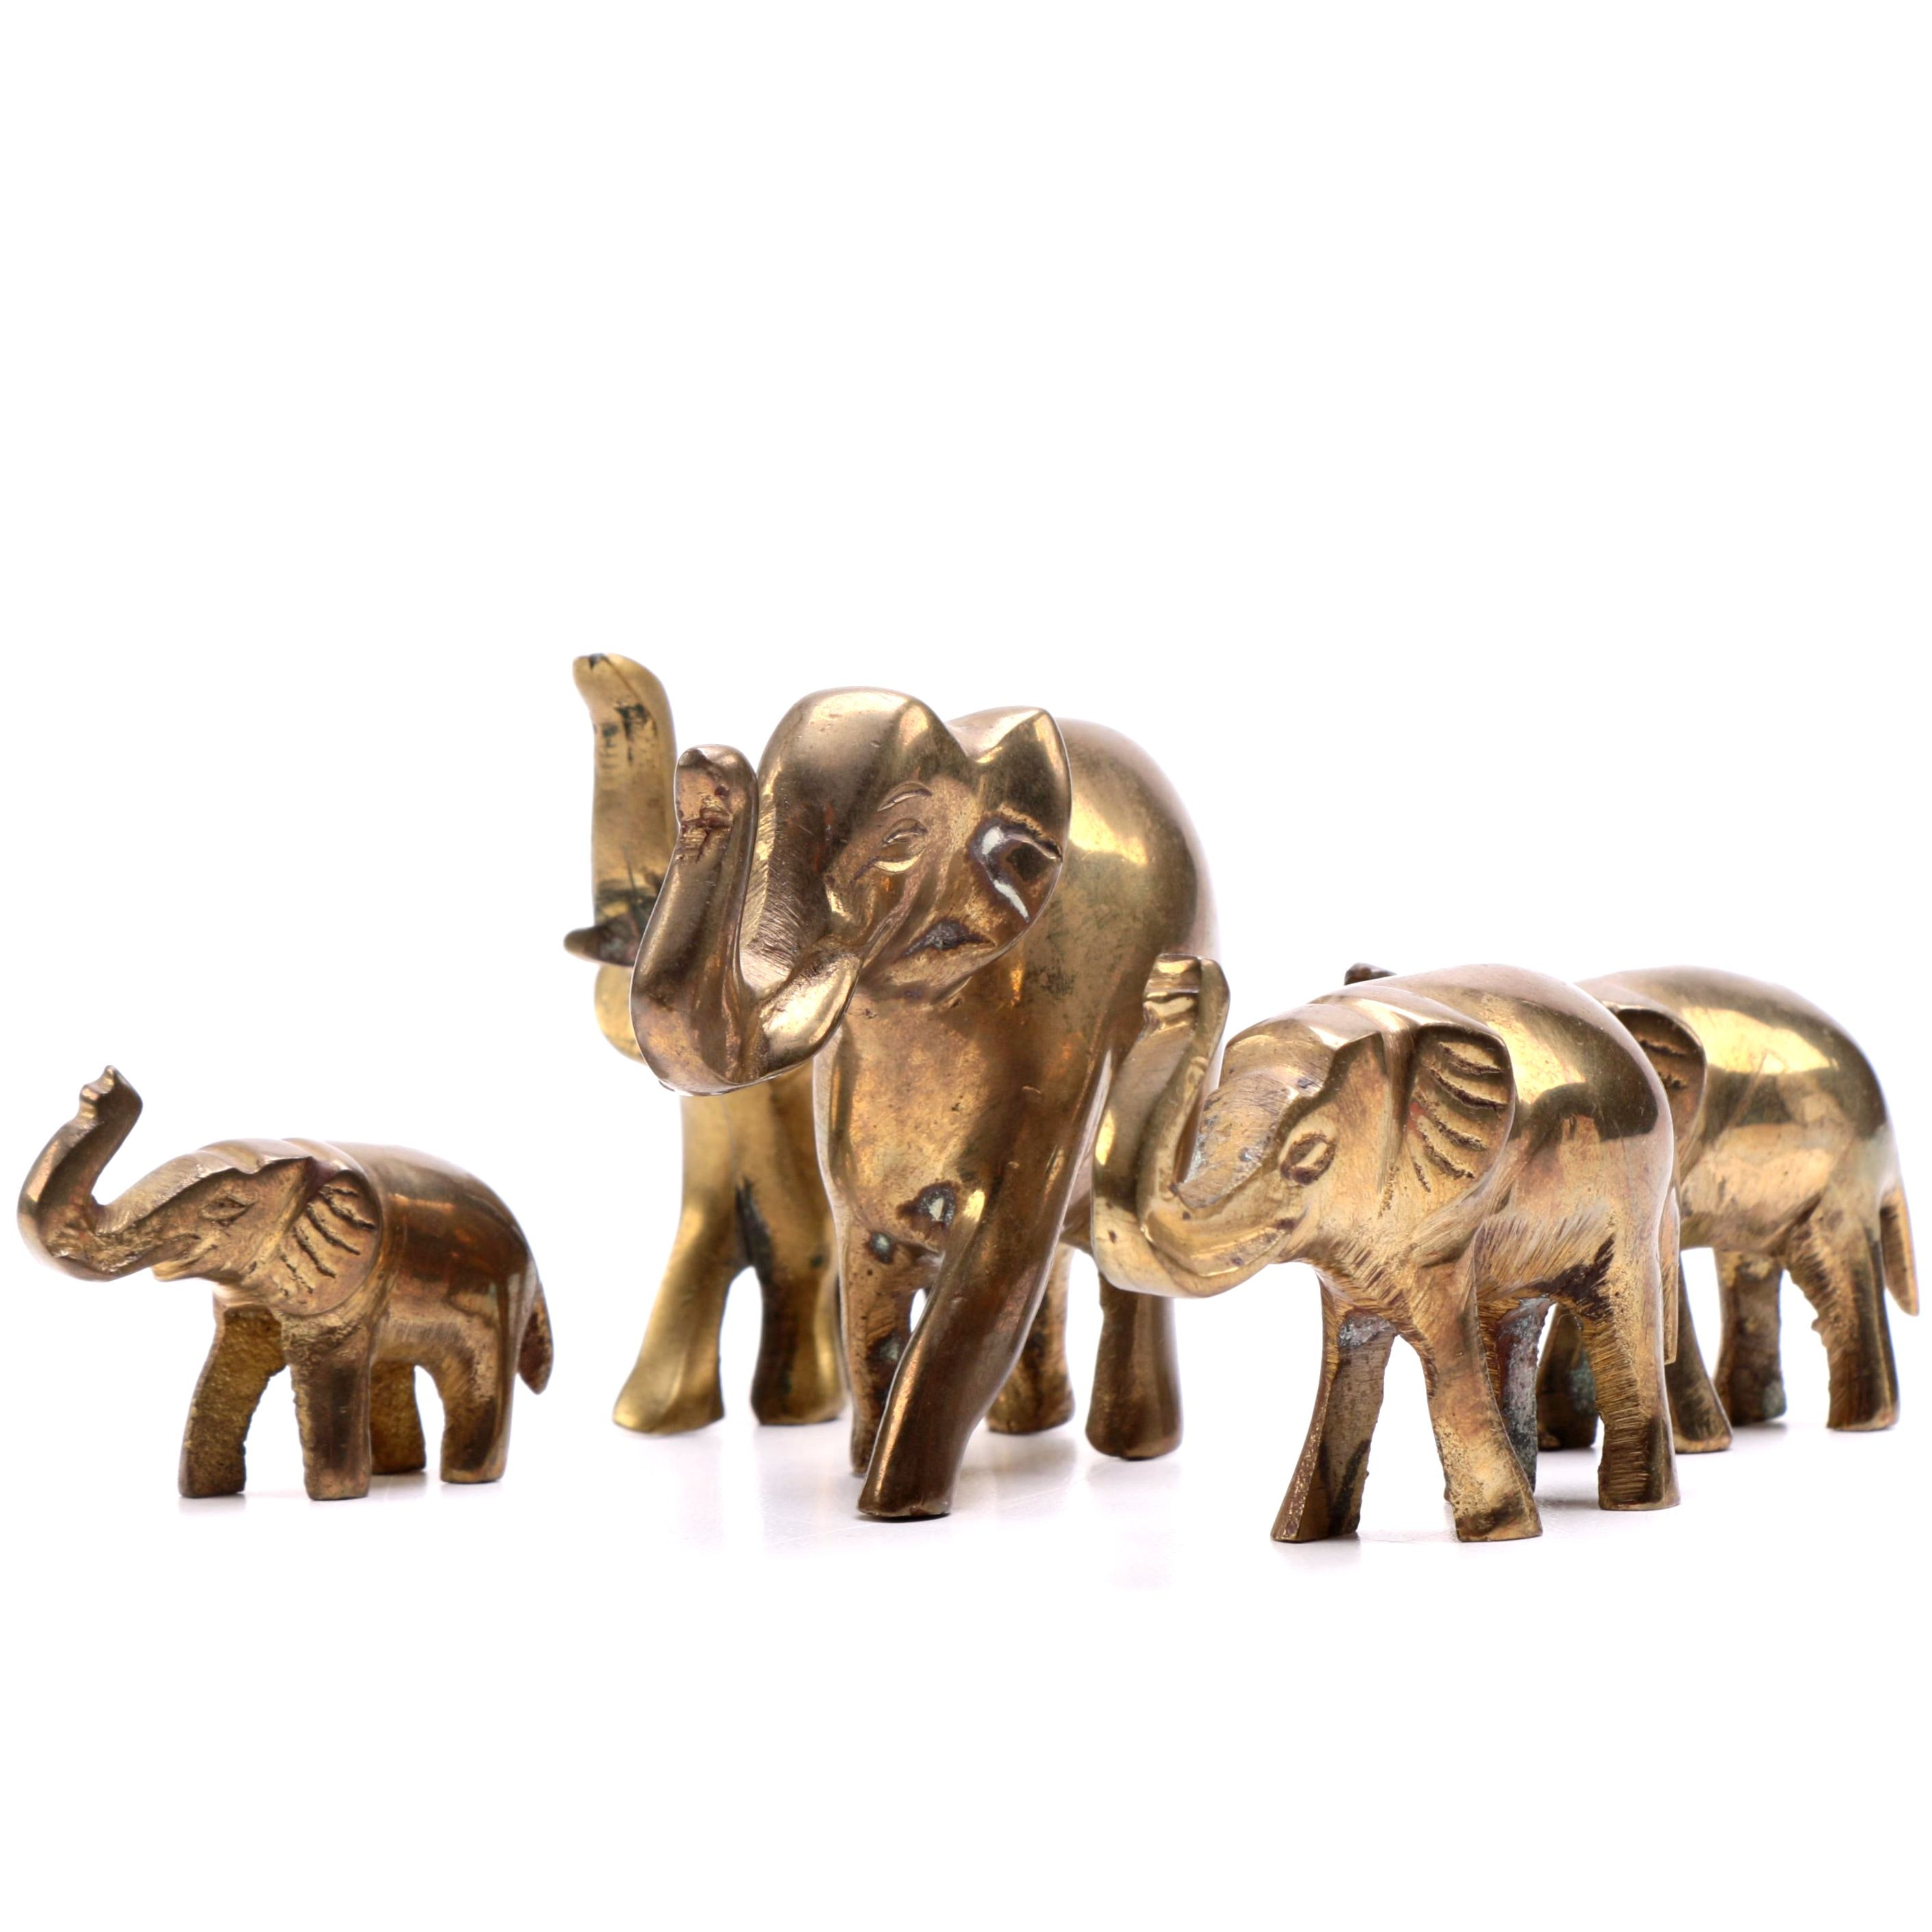 A Collection of Five Brass Elephants